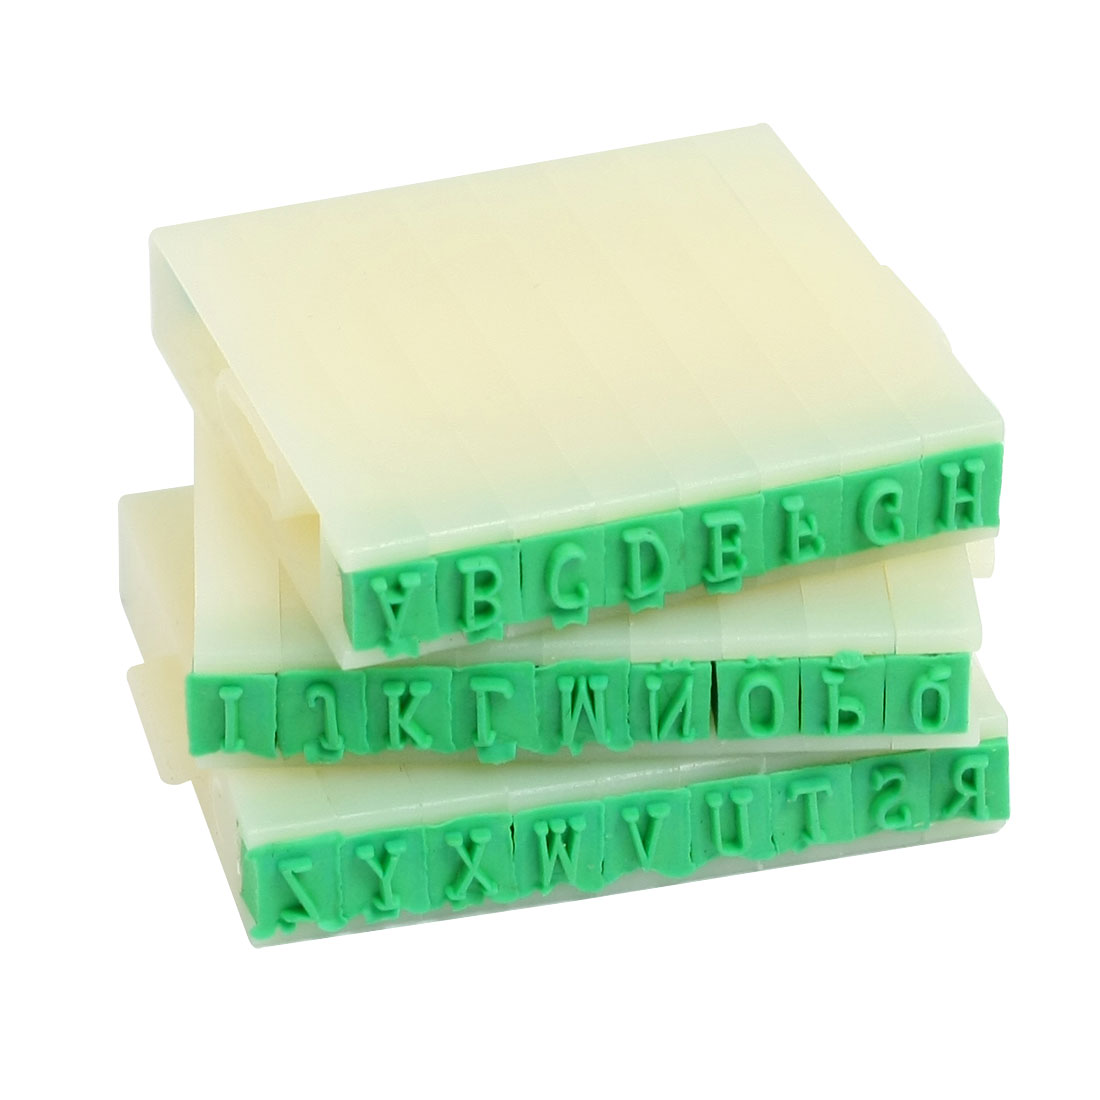 "0.12"" x 0.15"" Detachable Plastic Rubber English Letters Alphabet Stamp Set"